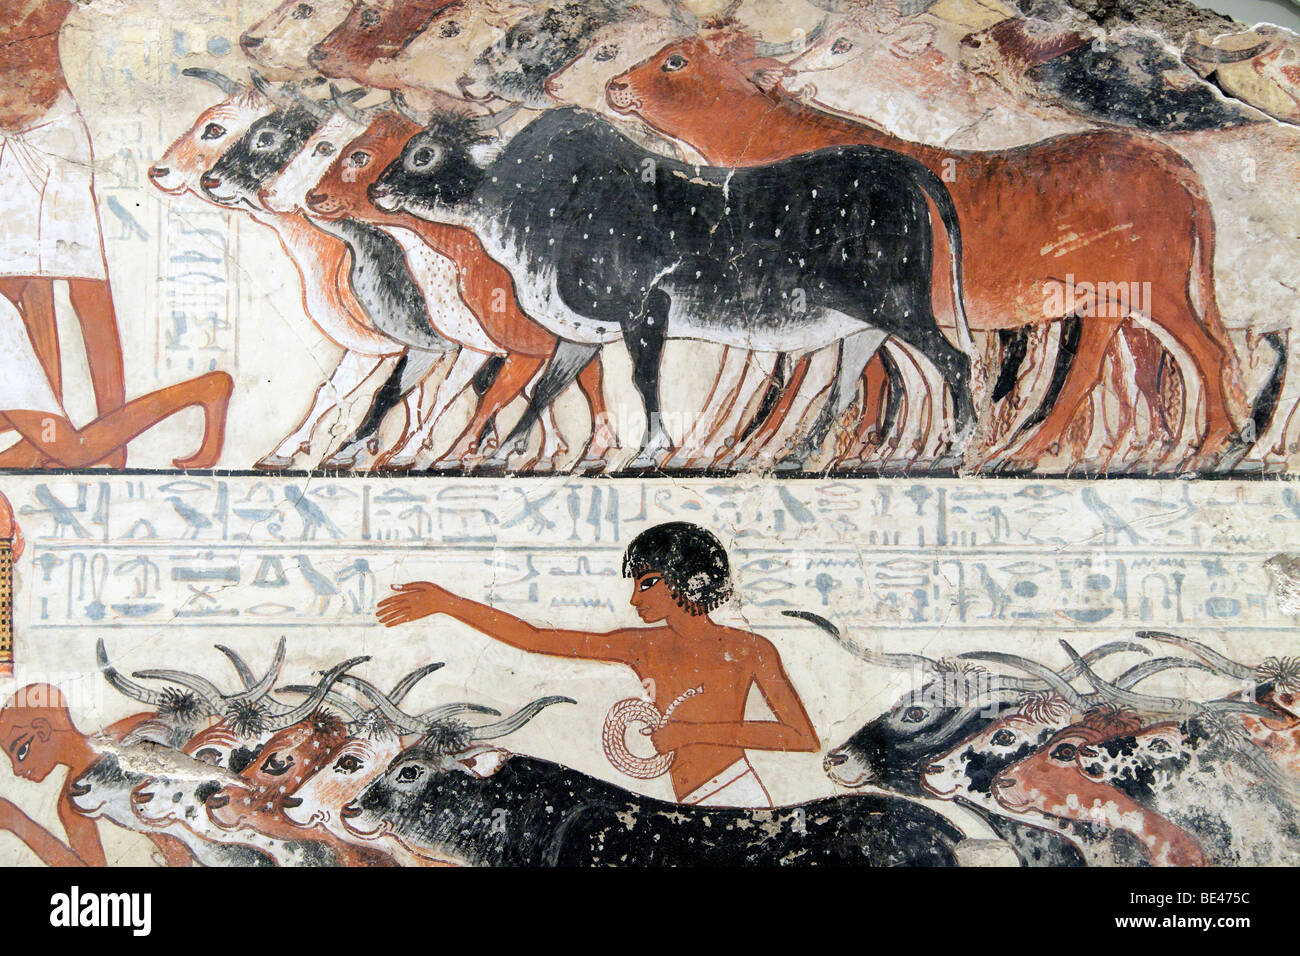 Egyptian wall painting, Nebamun viewing his cattle - British Museum - Stock Image